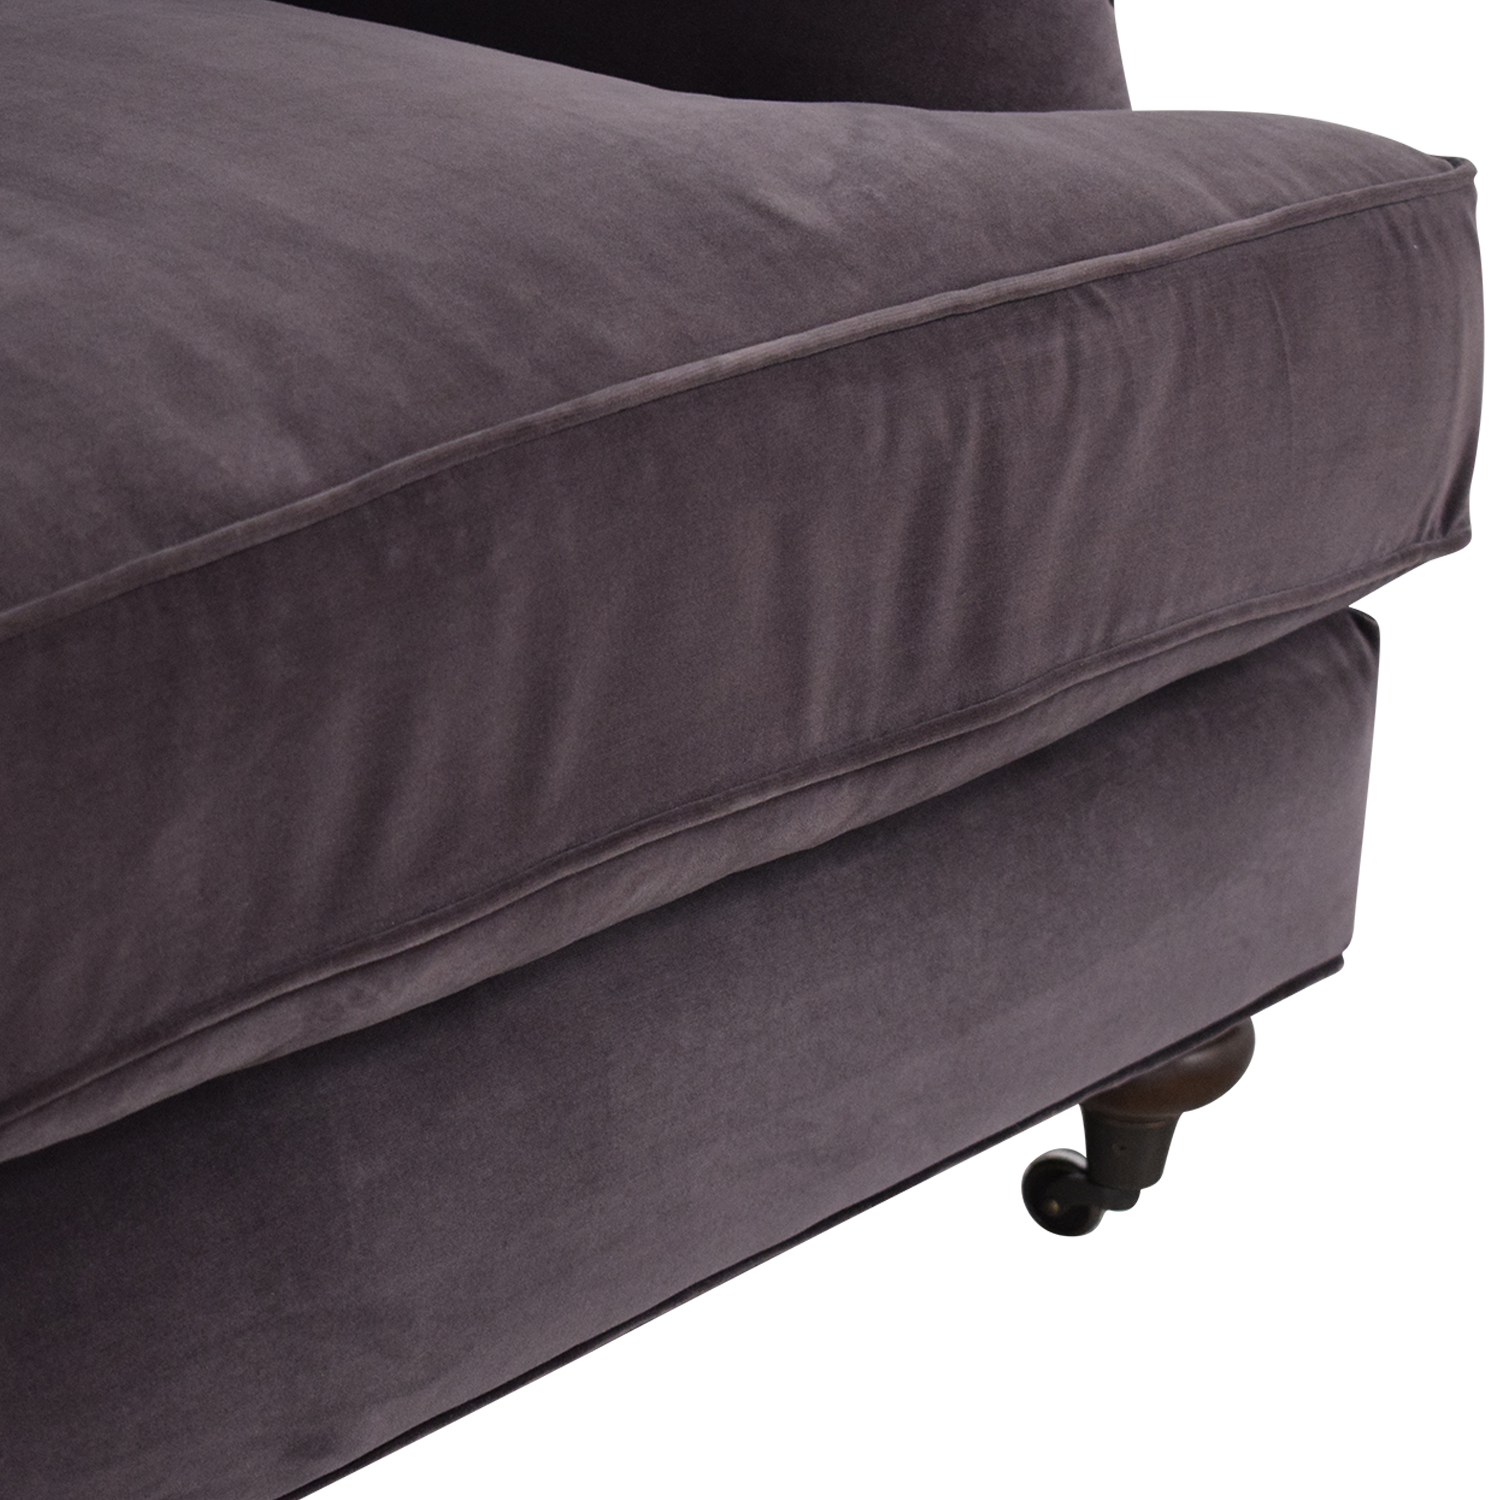 Frontgate Frontgate Cushion Loveseat used